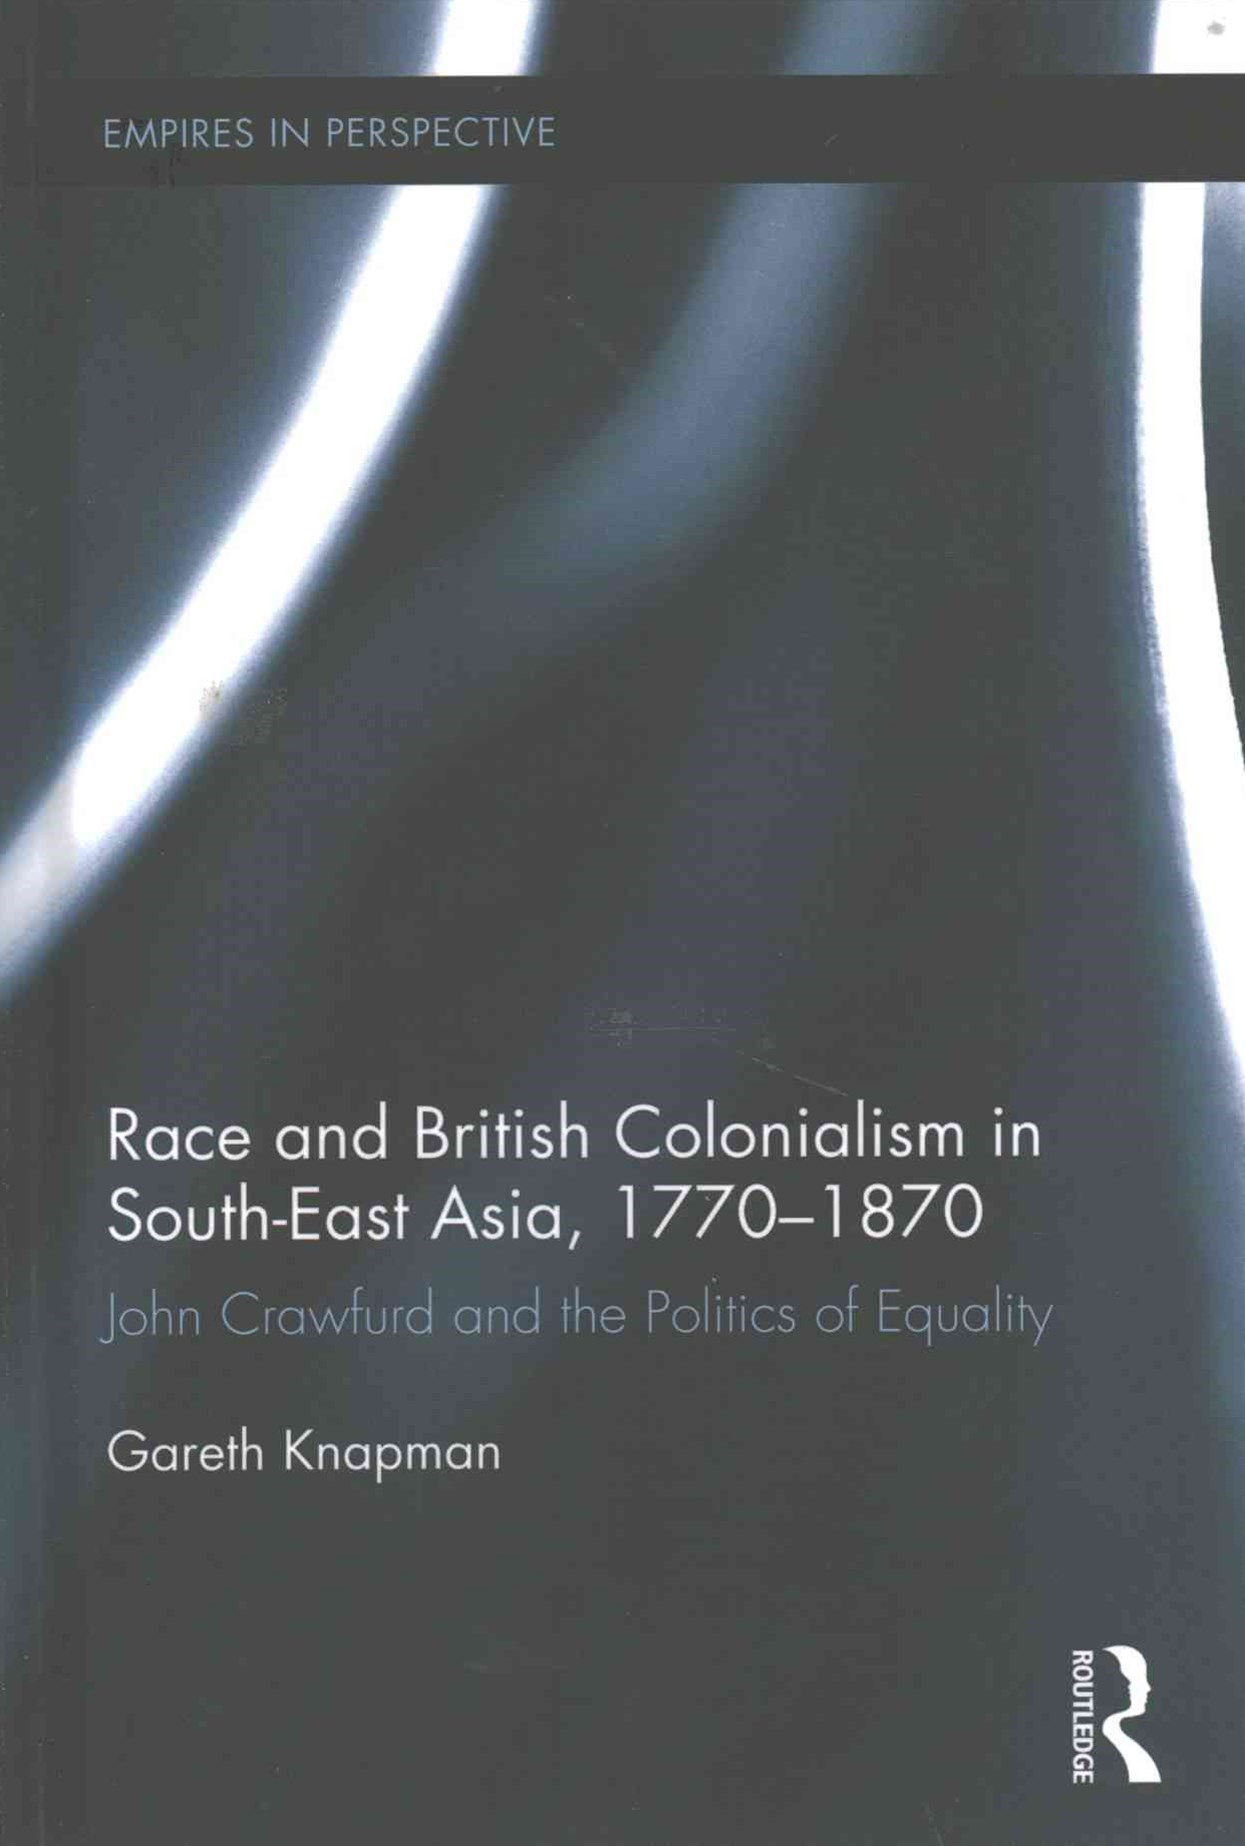 Race and British Colonialism in South-East Asia, 1770-1870